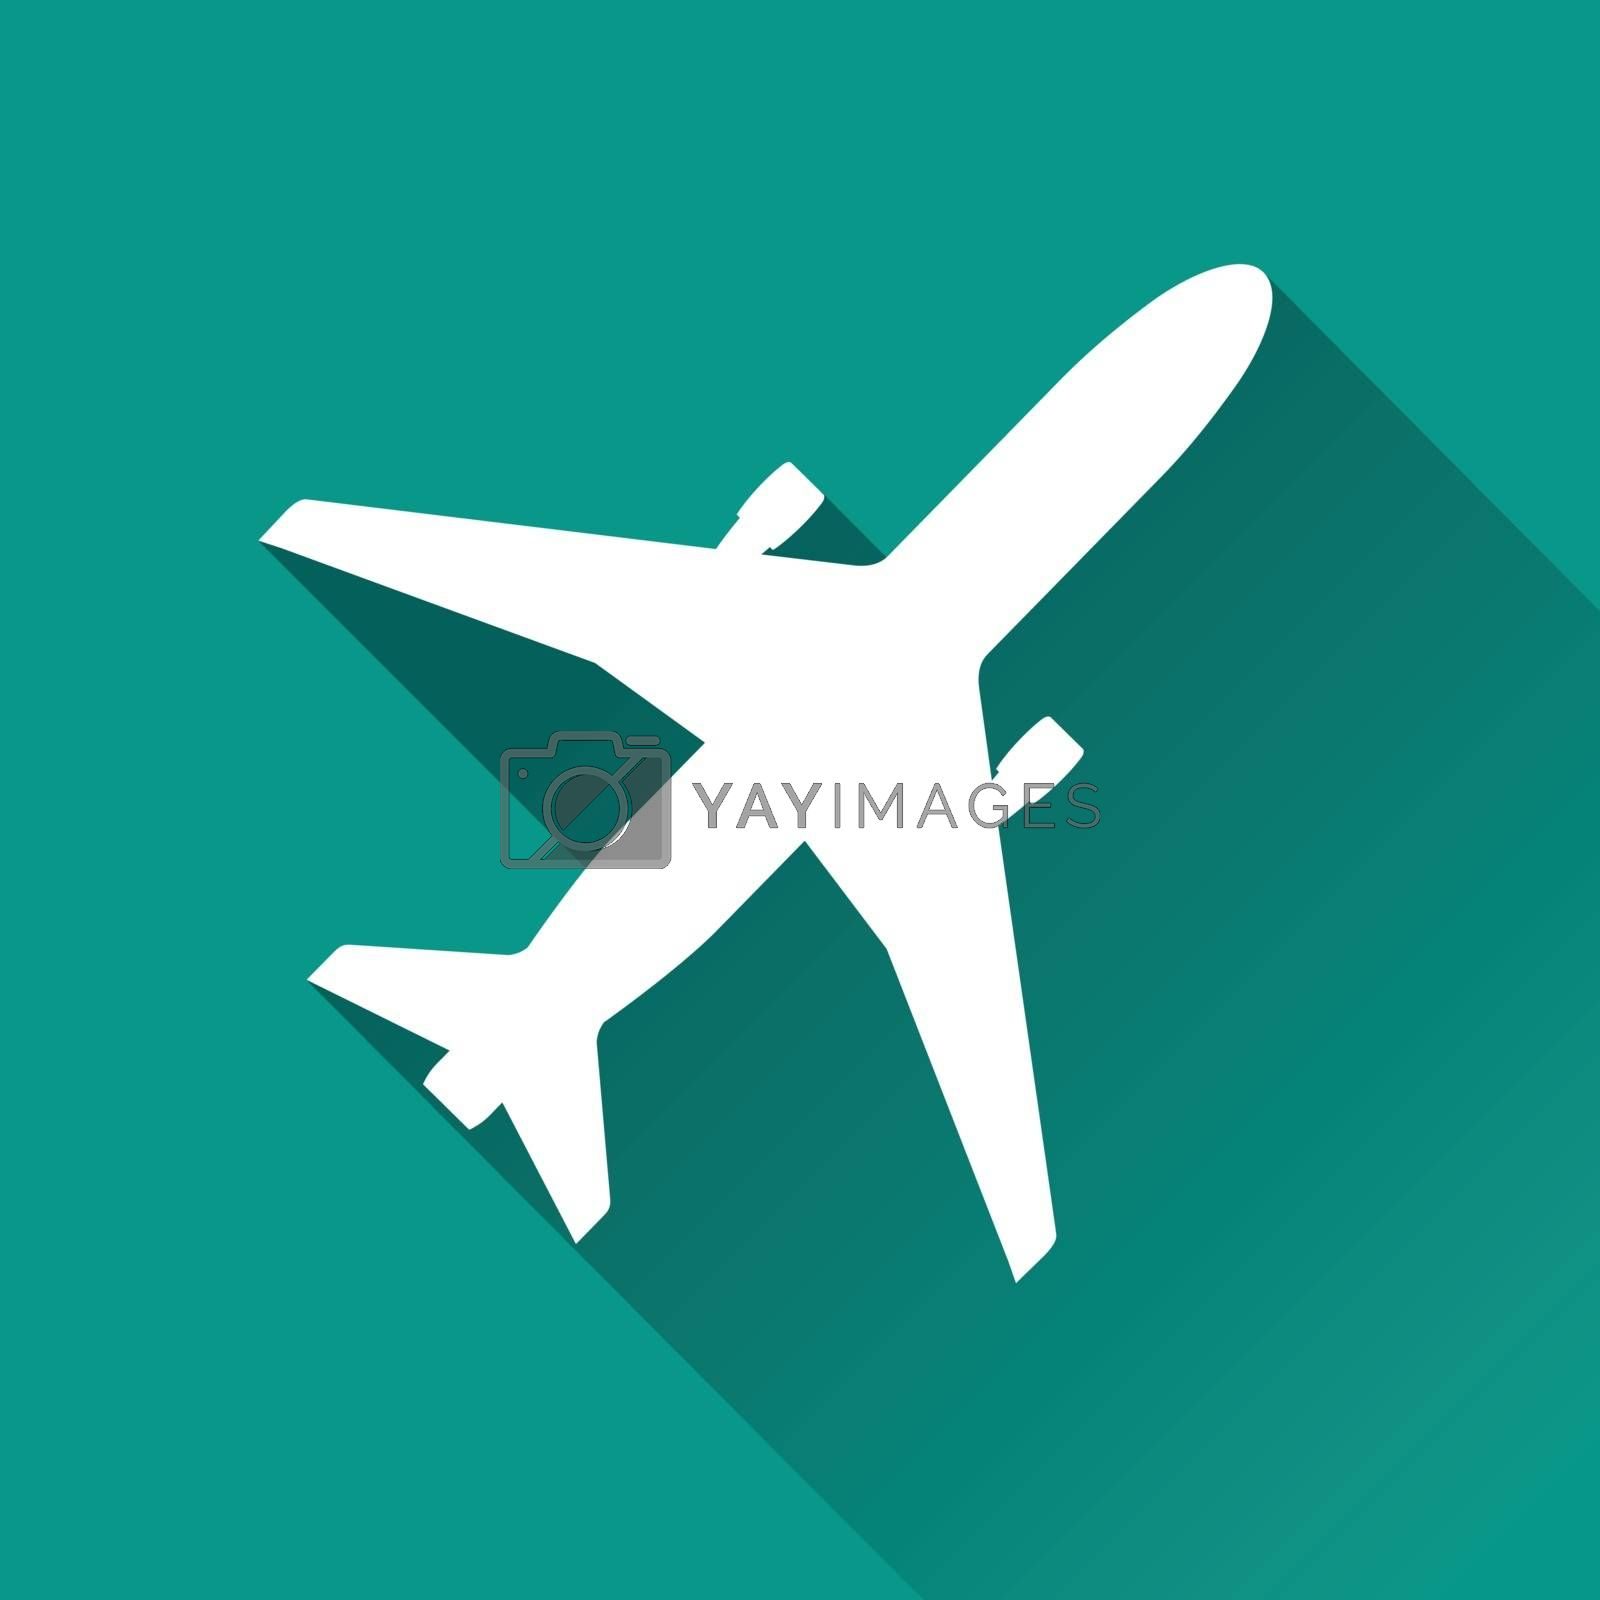 Royalty free image of aircraft flat design icon by nickylarson974